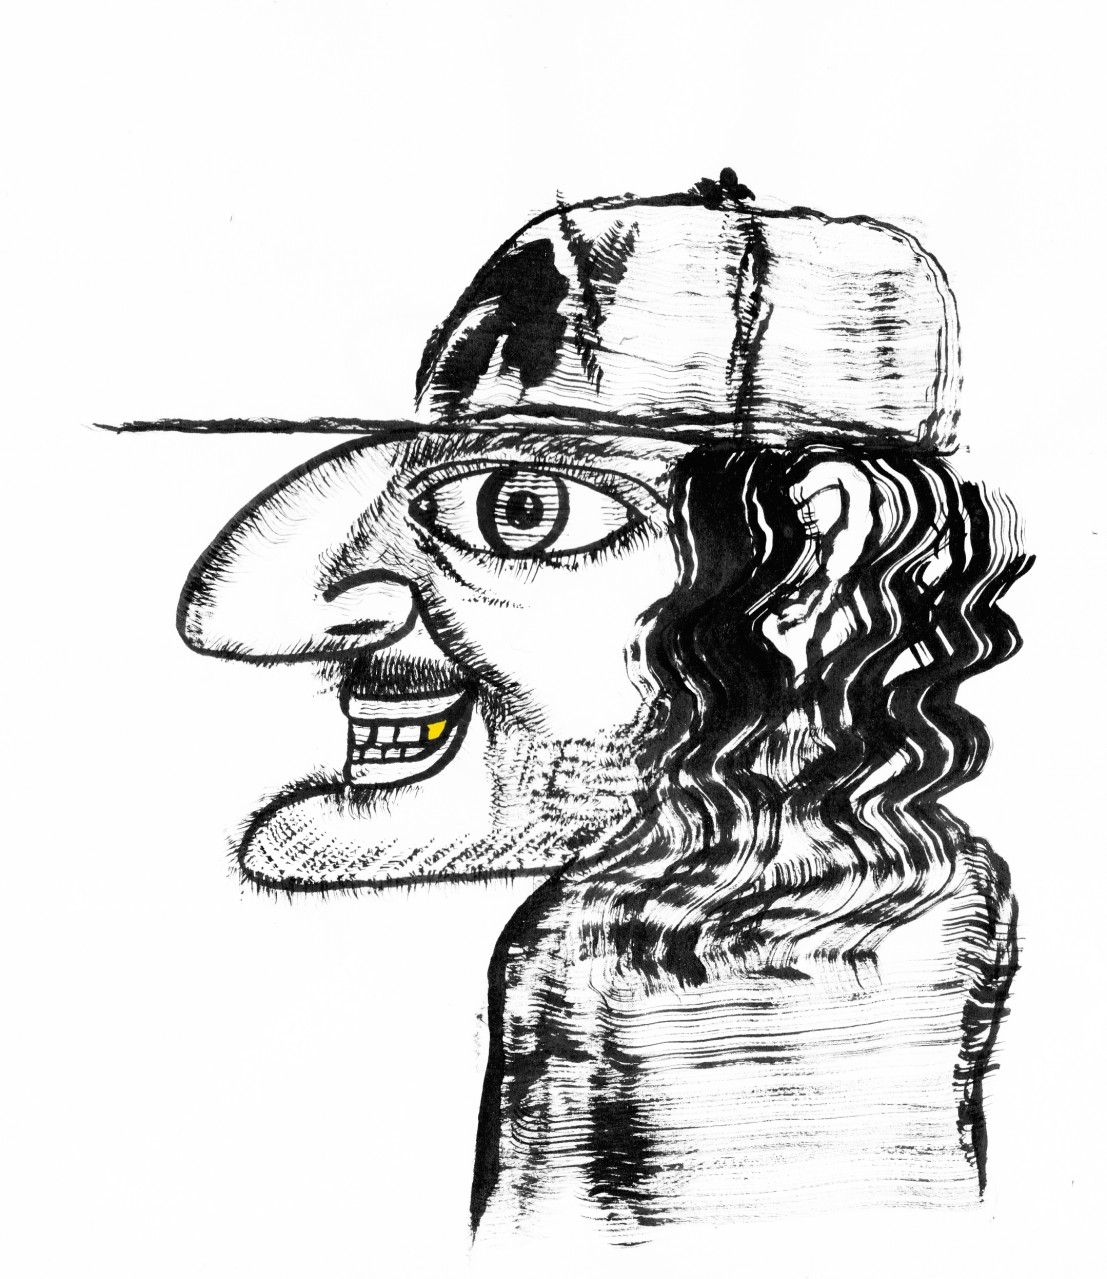 Self Portrait, by King Tuff